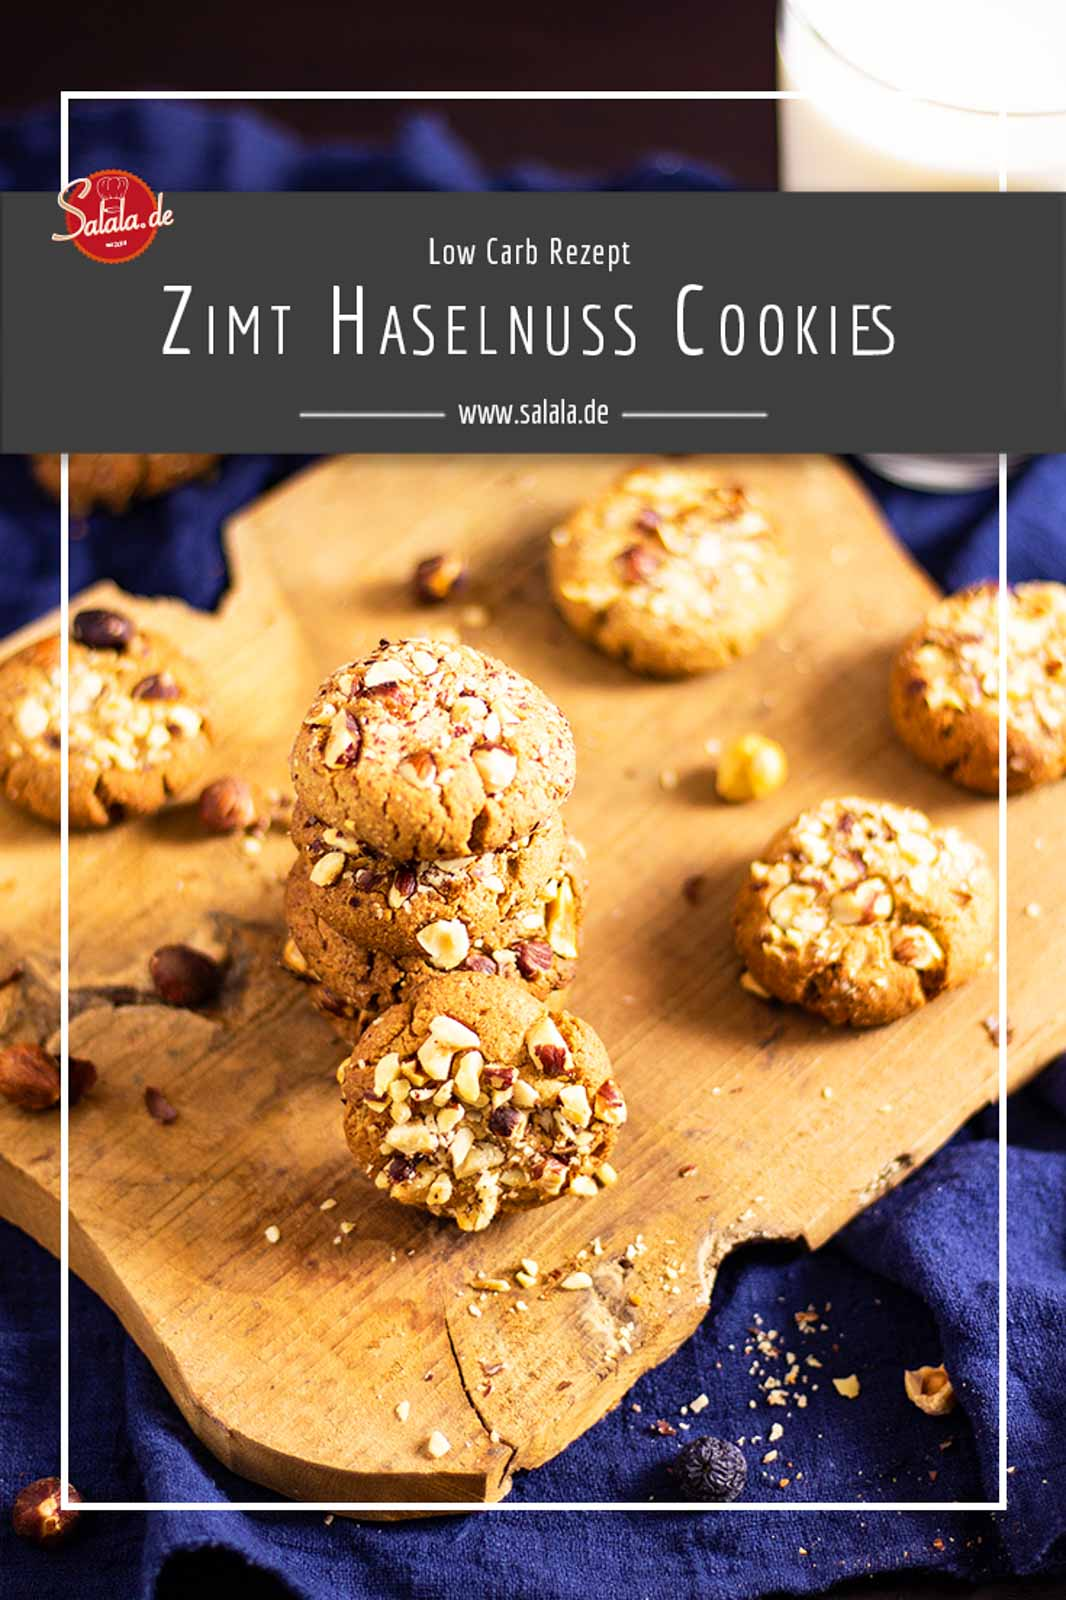 Haselnusscookies mit Zimt - by salala.de - Low Carb Rezept ohne Mehl und ohne Zucker Low Carb glutenfrei #Cookies #Haselnusscookies #Zimtcookies #glutenfrei #LowCarb #Rezepte #LowCarbRezepte